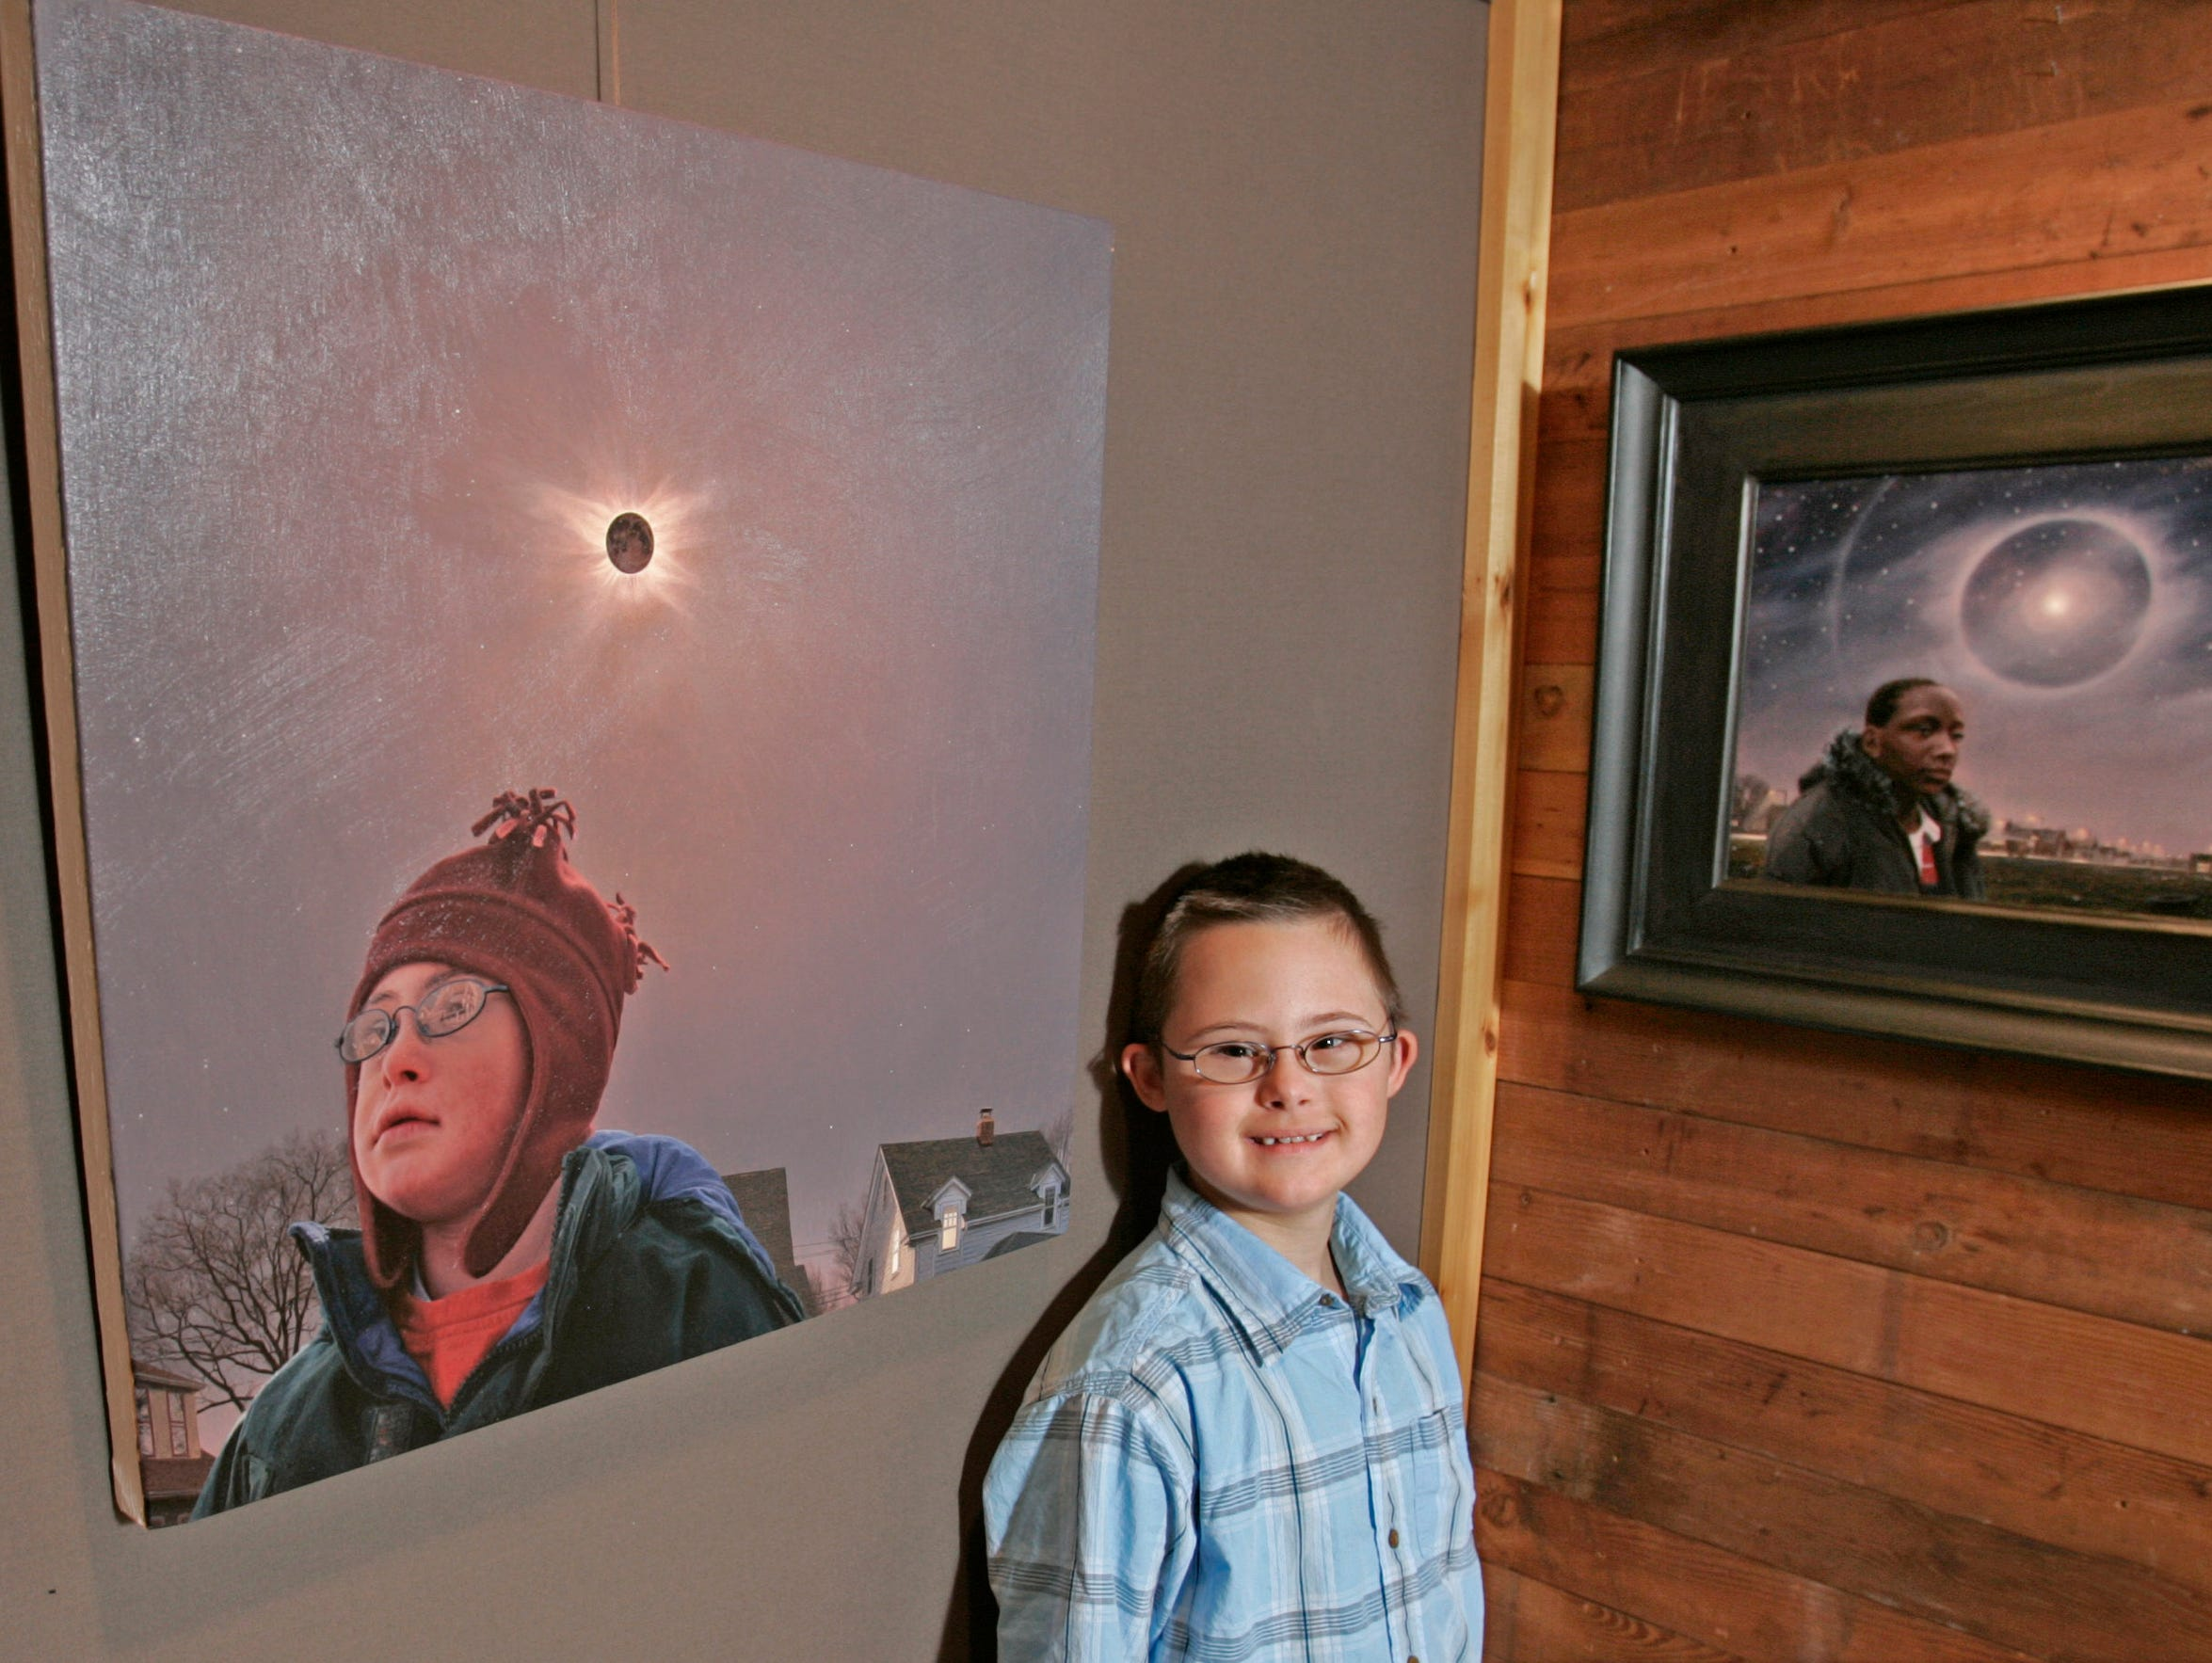 In 2006, Sam Lenz stands near a portrait of himself